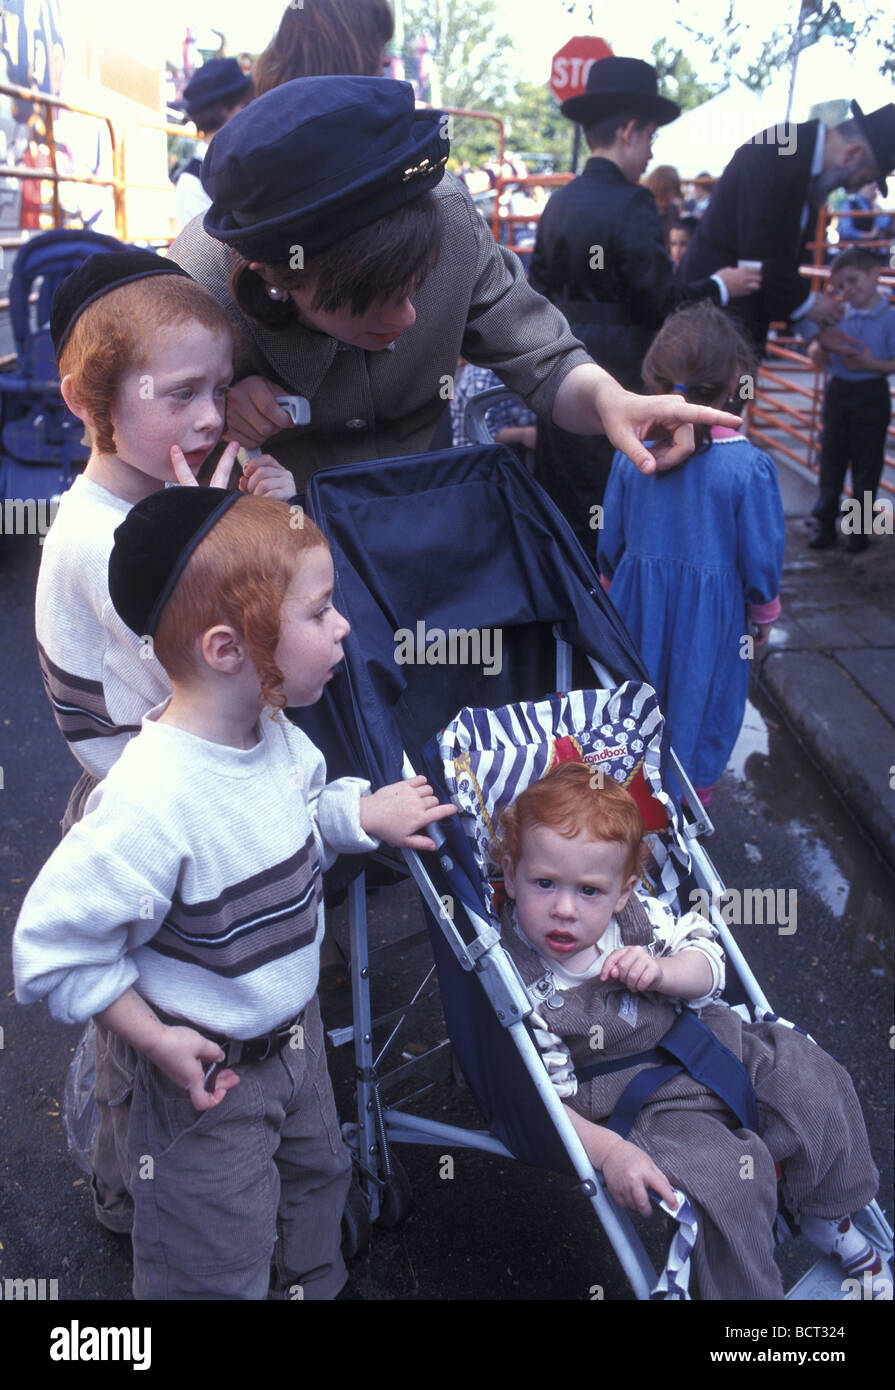 Orthodox Jewish mother with three children all with red hair Borough Park Brooklyn - Stock Image